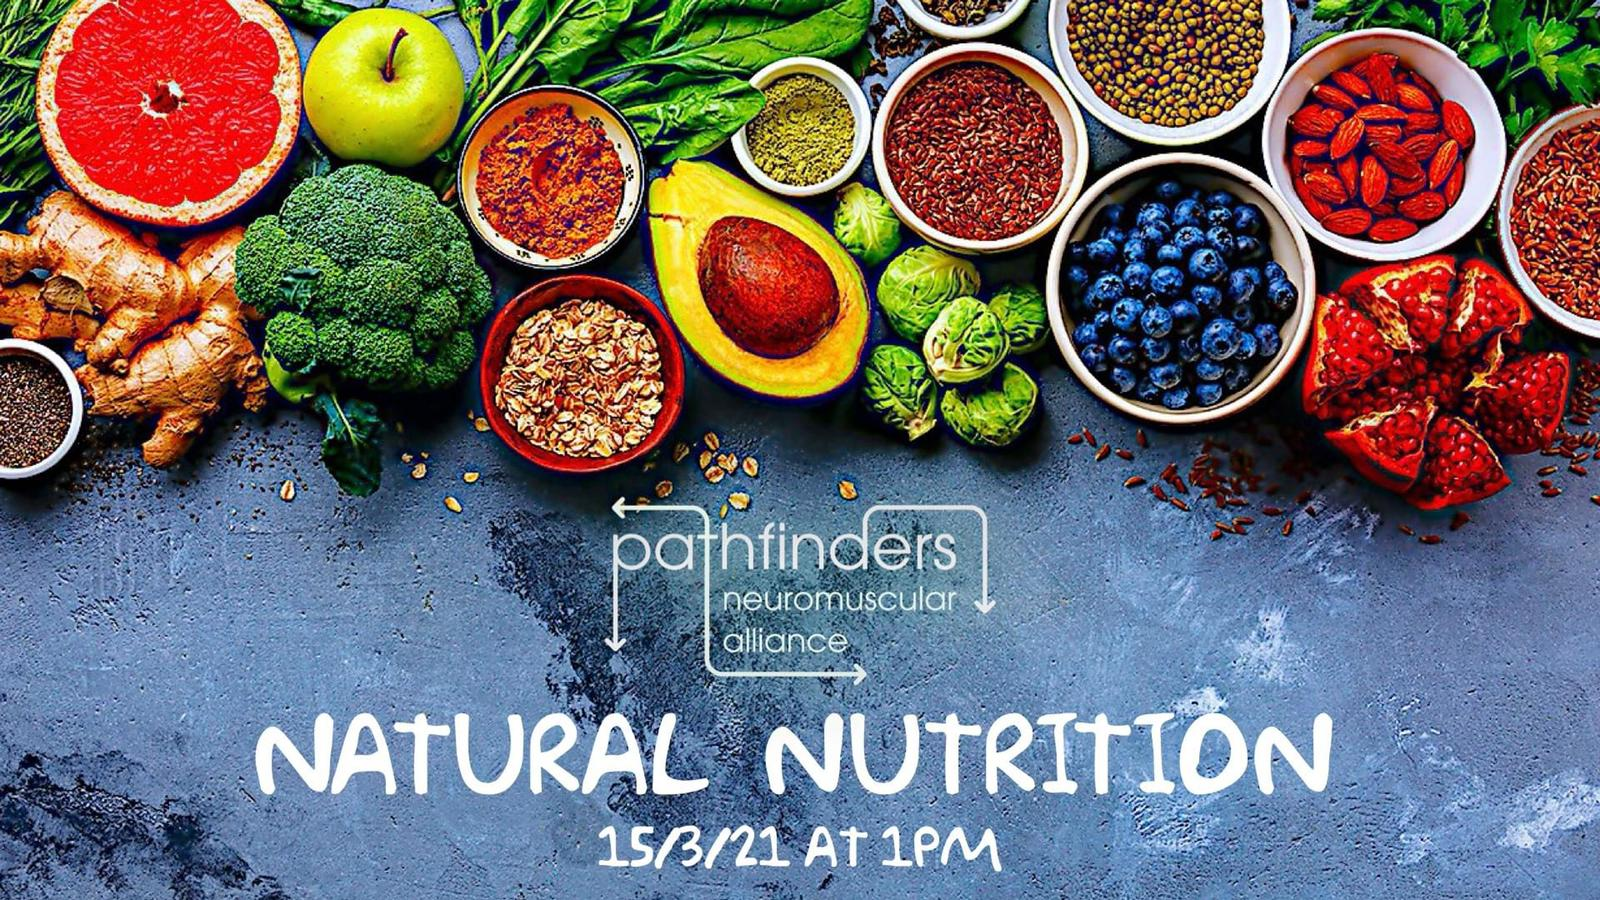 Pathfinders Neuromuscular Alliance Are Hosting A Natural Nutrition Event